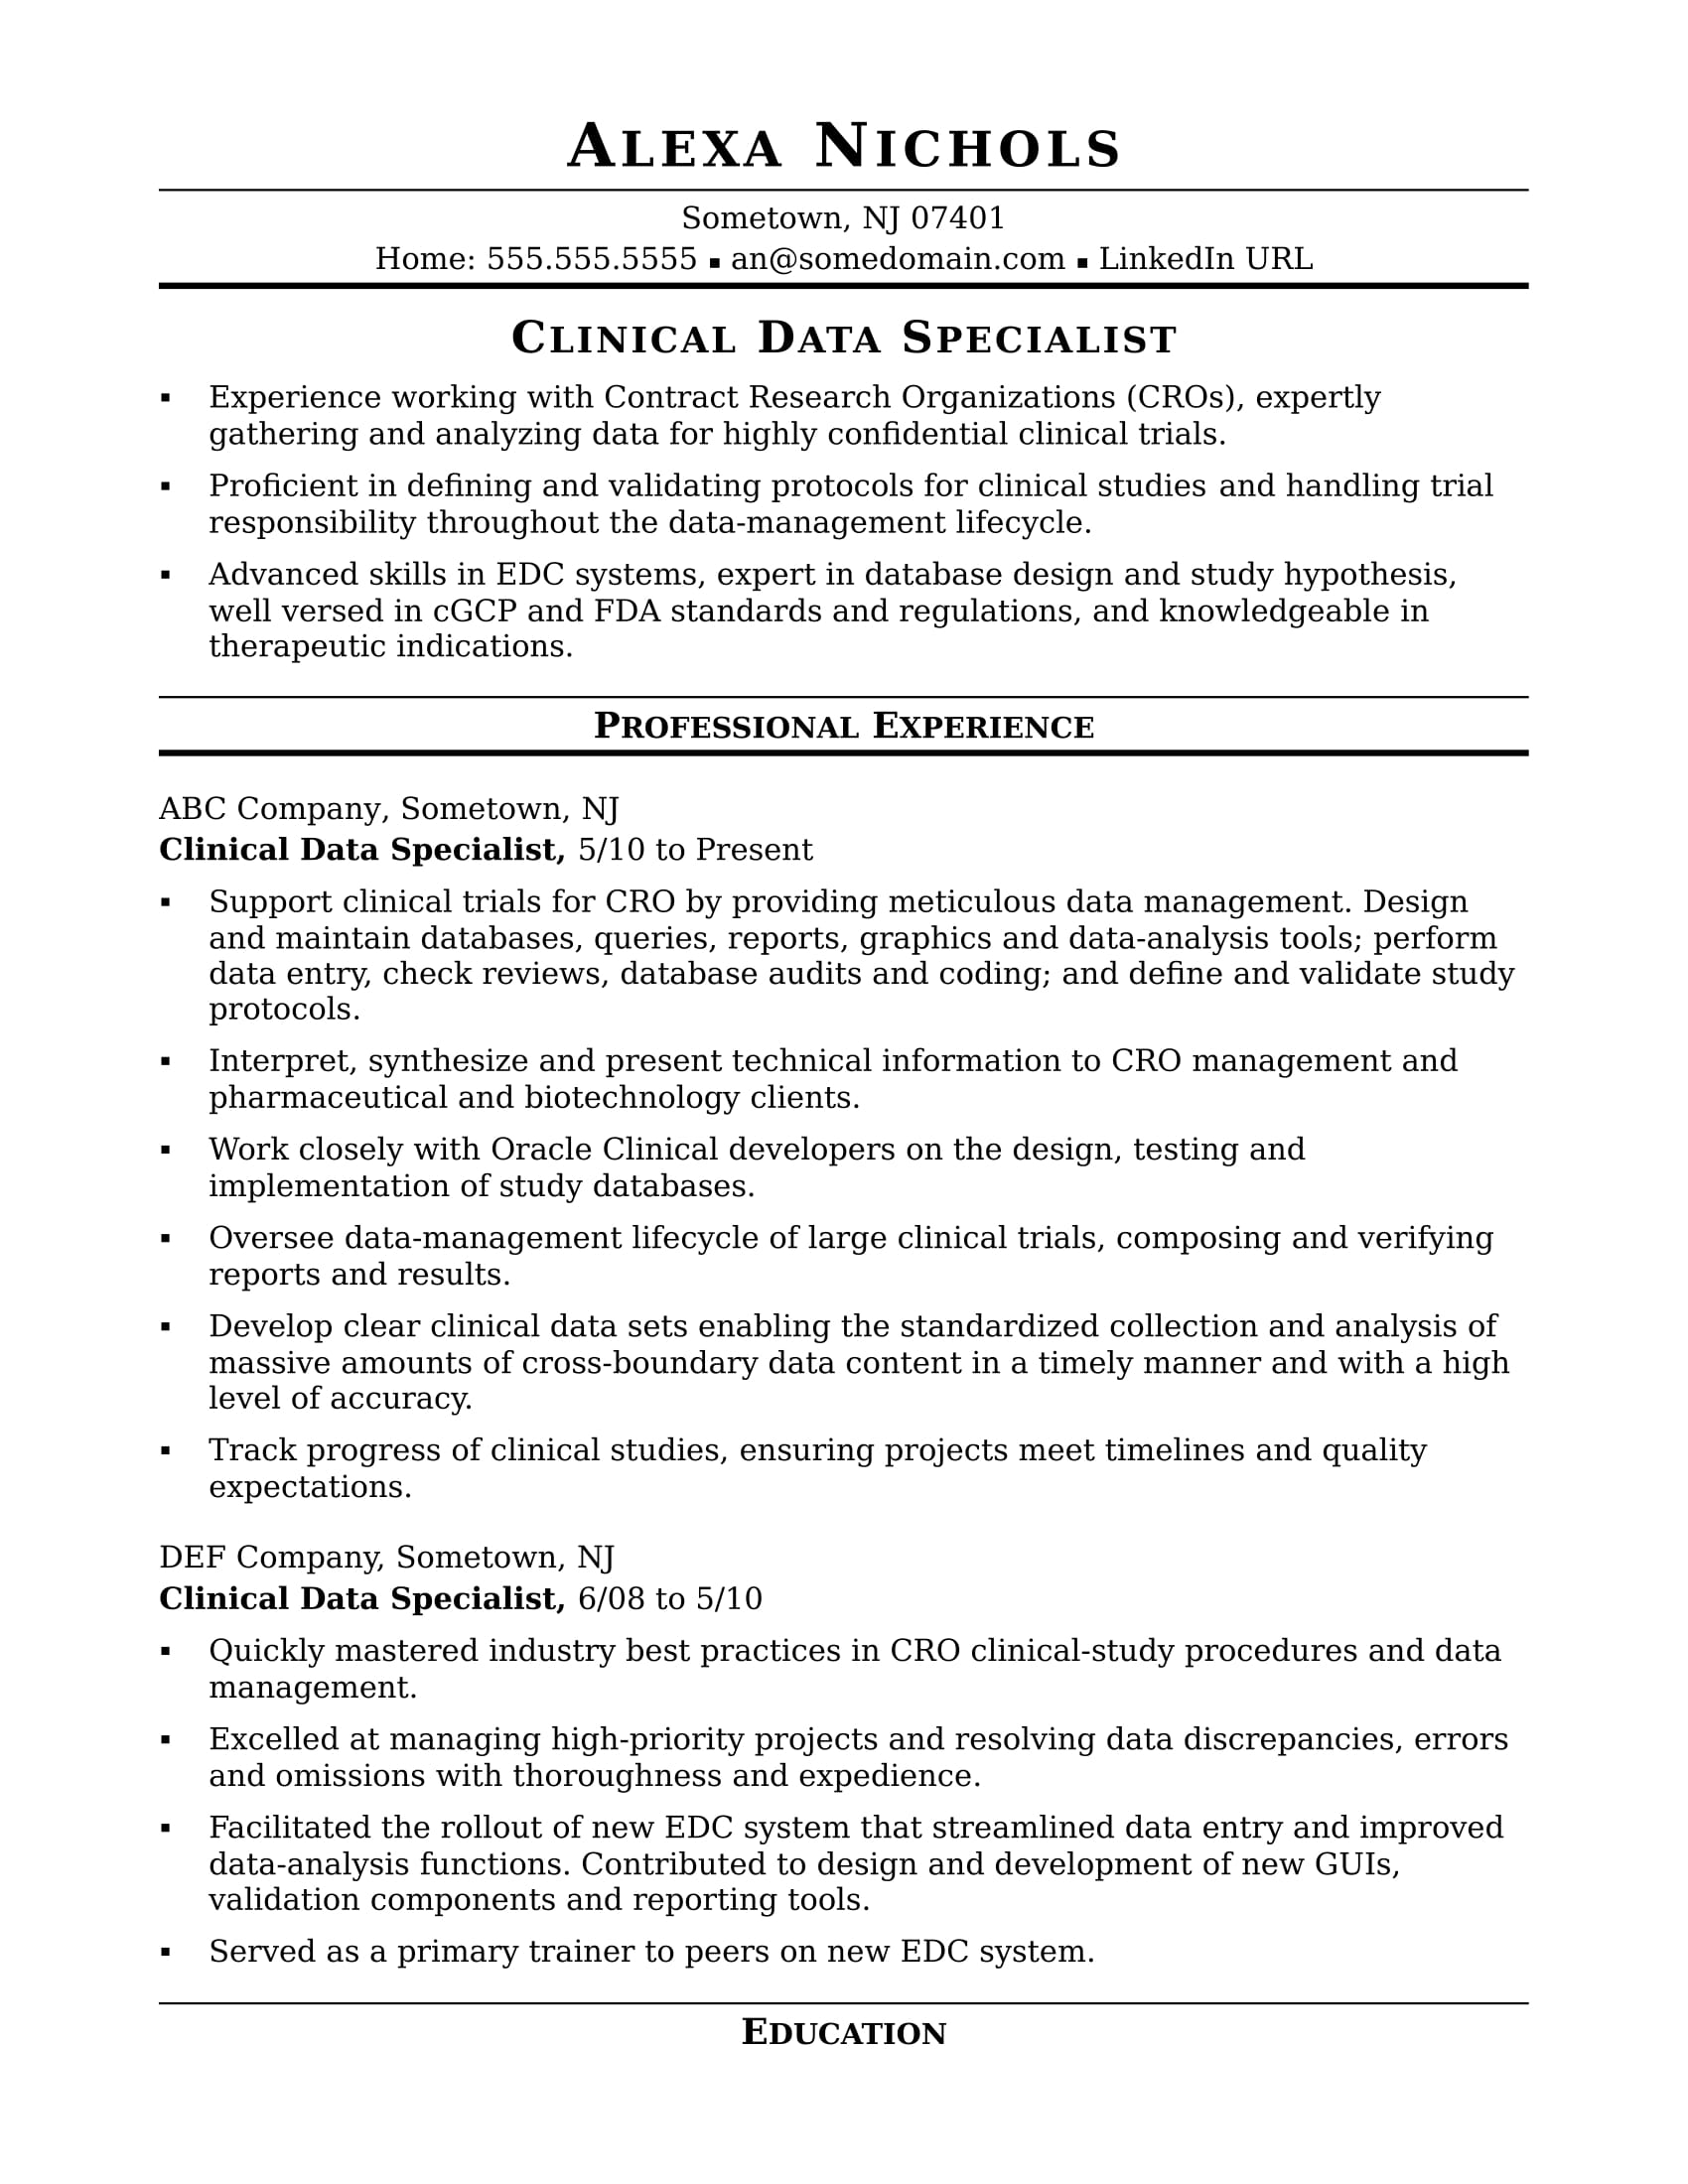 clinical data specialist resume sample monster research format for freshers modeling Resume Clinical Research Resume Format For Freshers